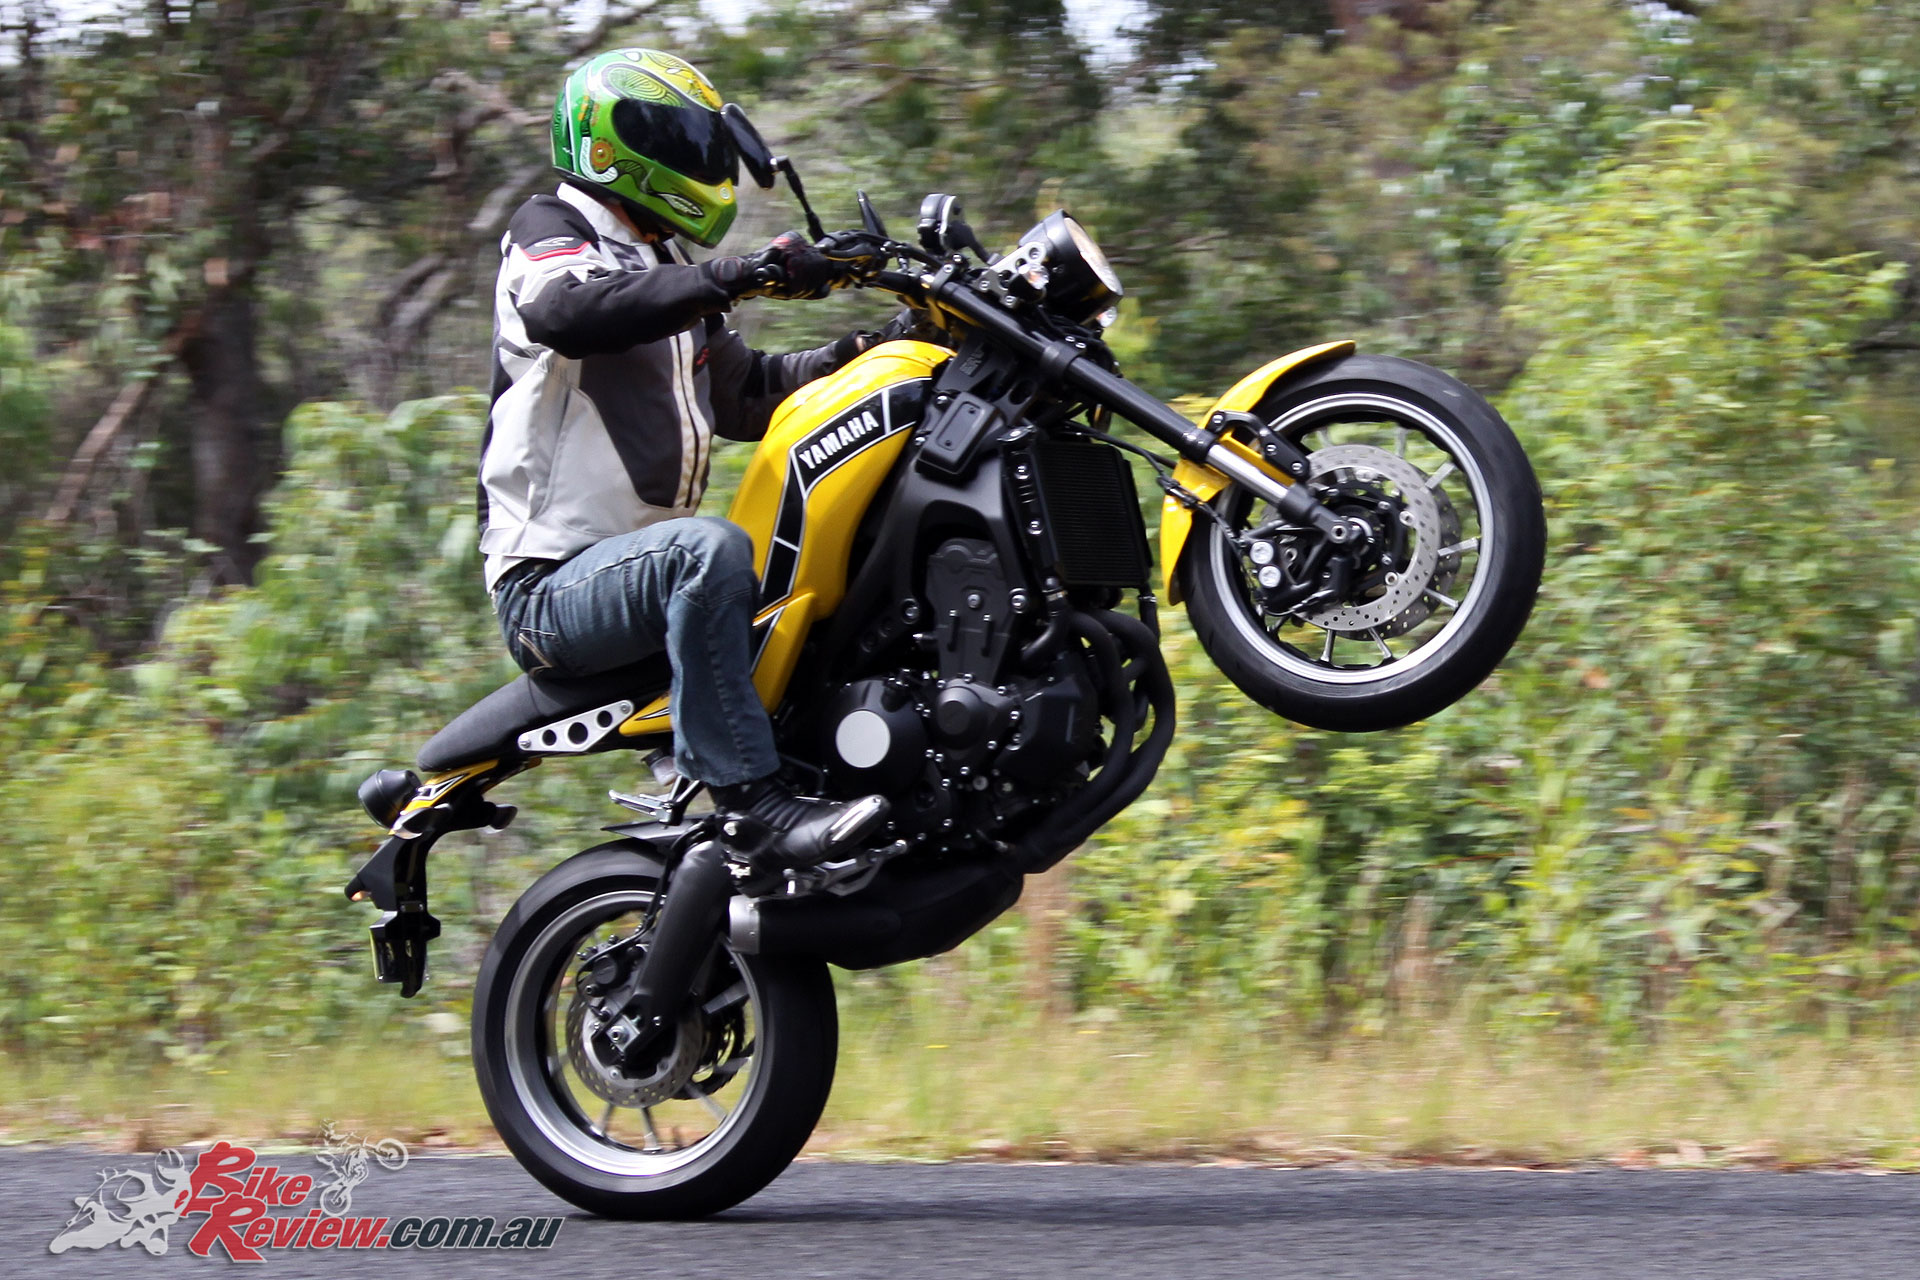 There's no questioning the XSR900's mumbo, even in B-mode!